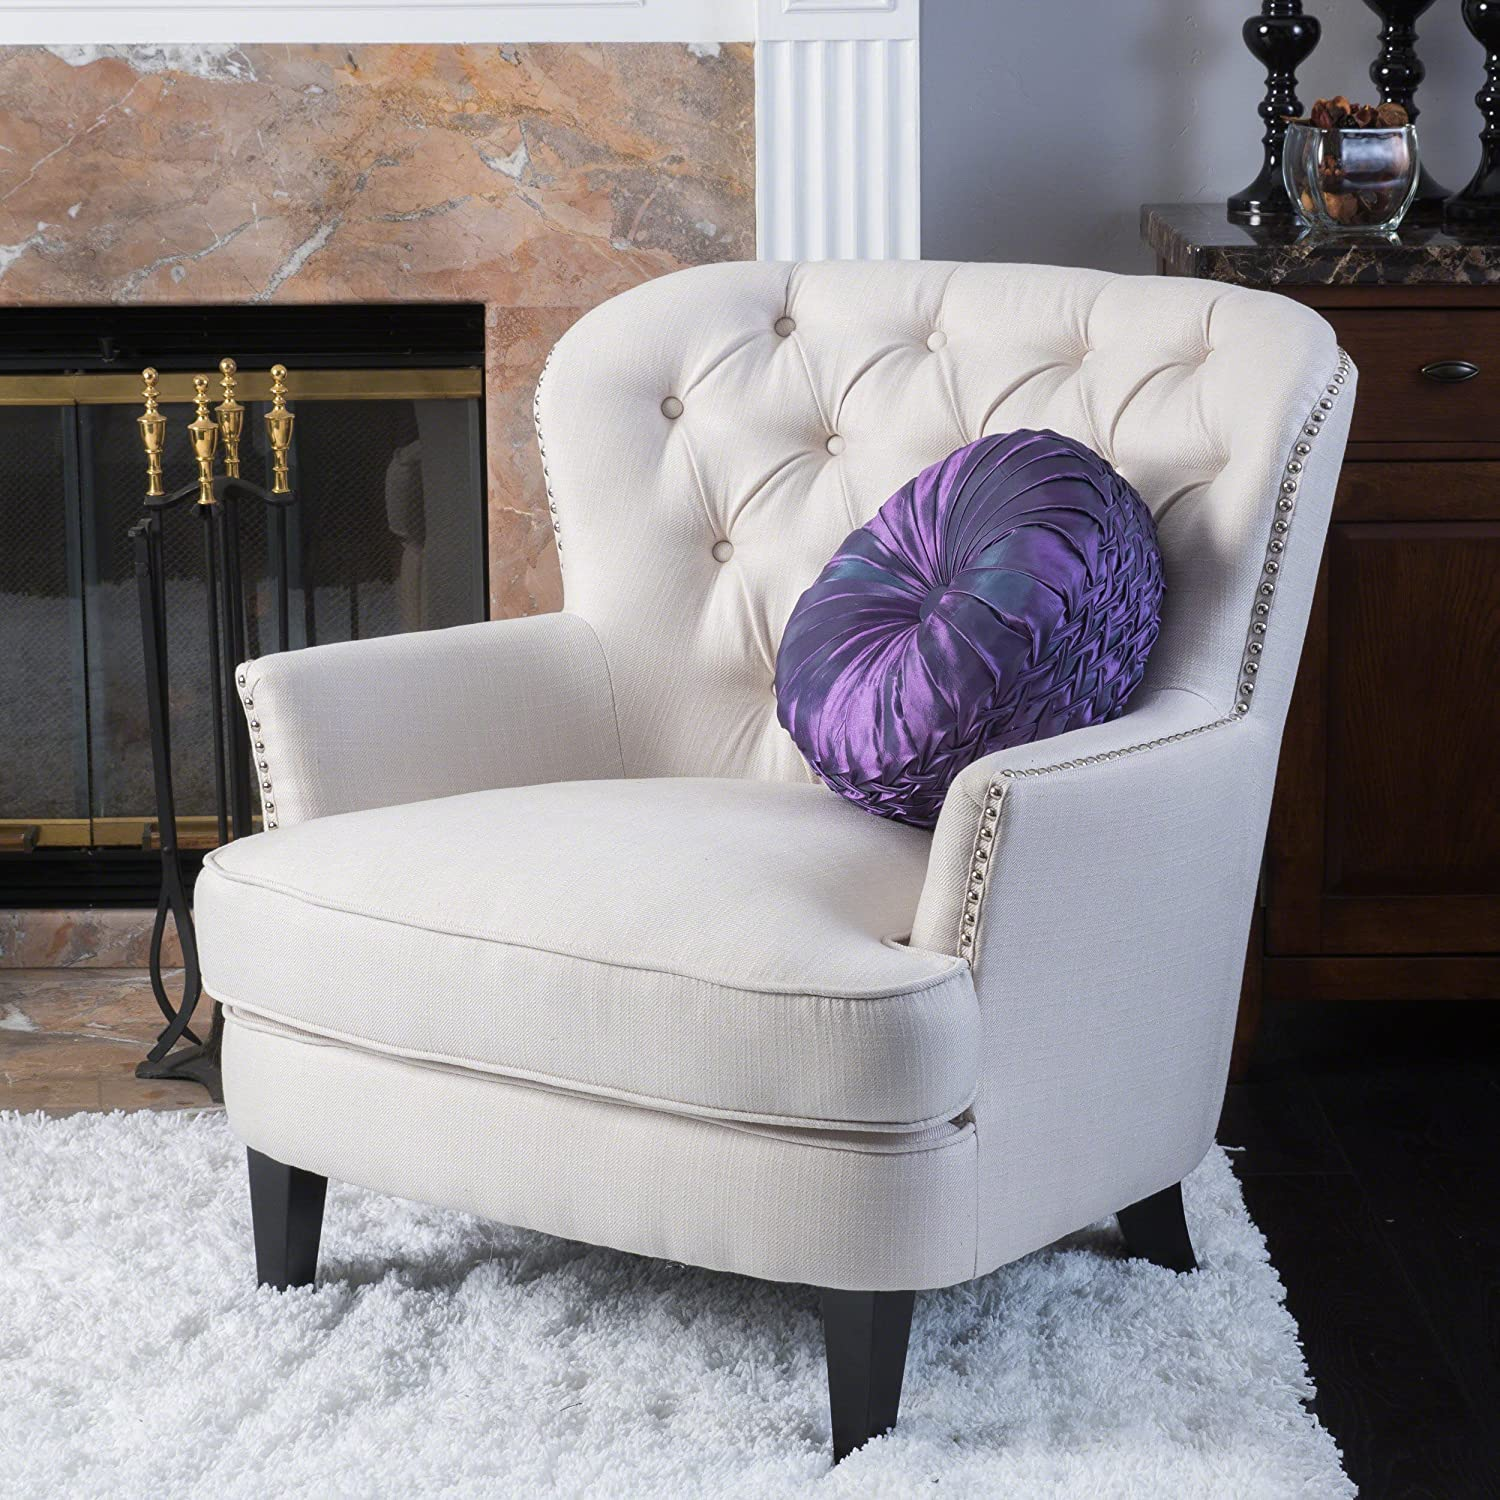 Christopher Knight Home 296469 Deal Furniture Alfred | Button-Tufted Fabric Club Chair Studded Accents | in Ivory